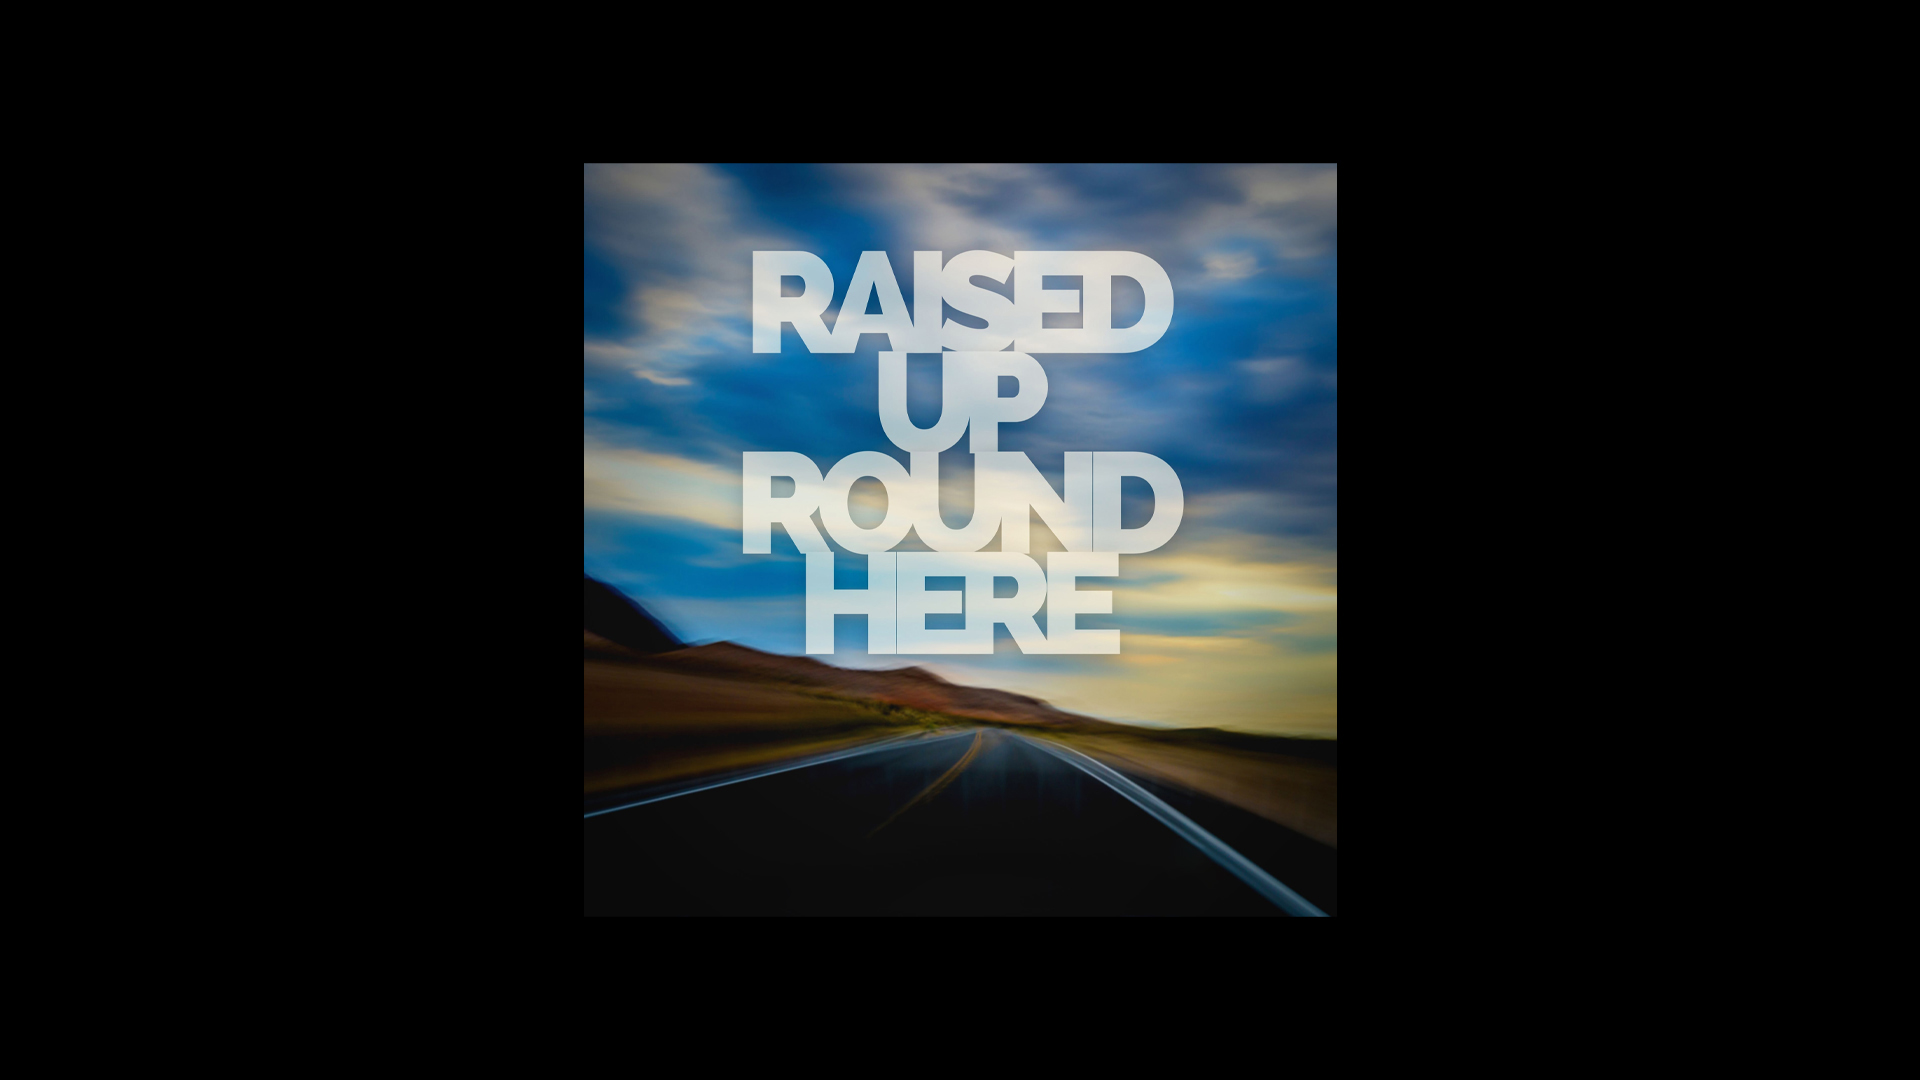 Raised Up Round Here The new single by Brendyn Kyle.